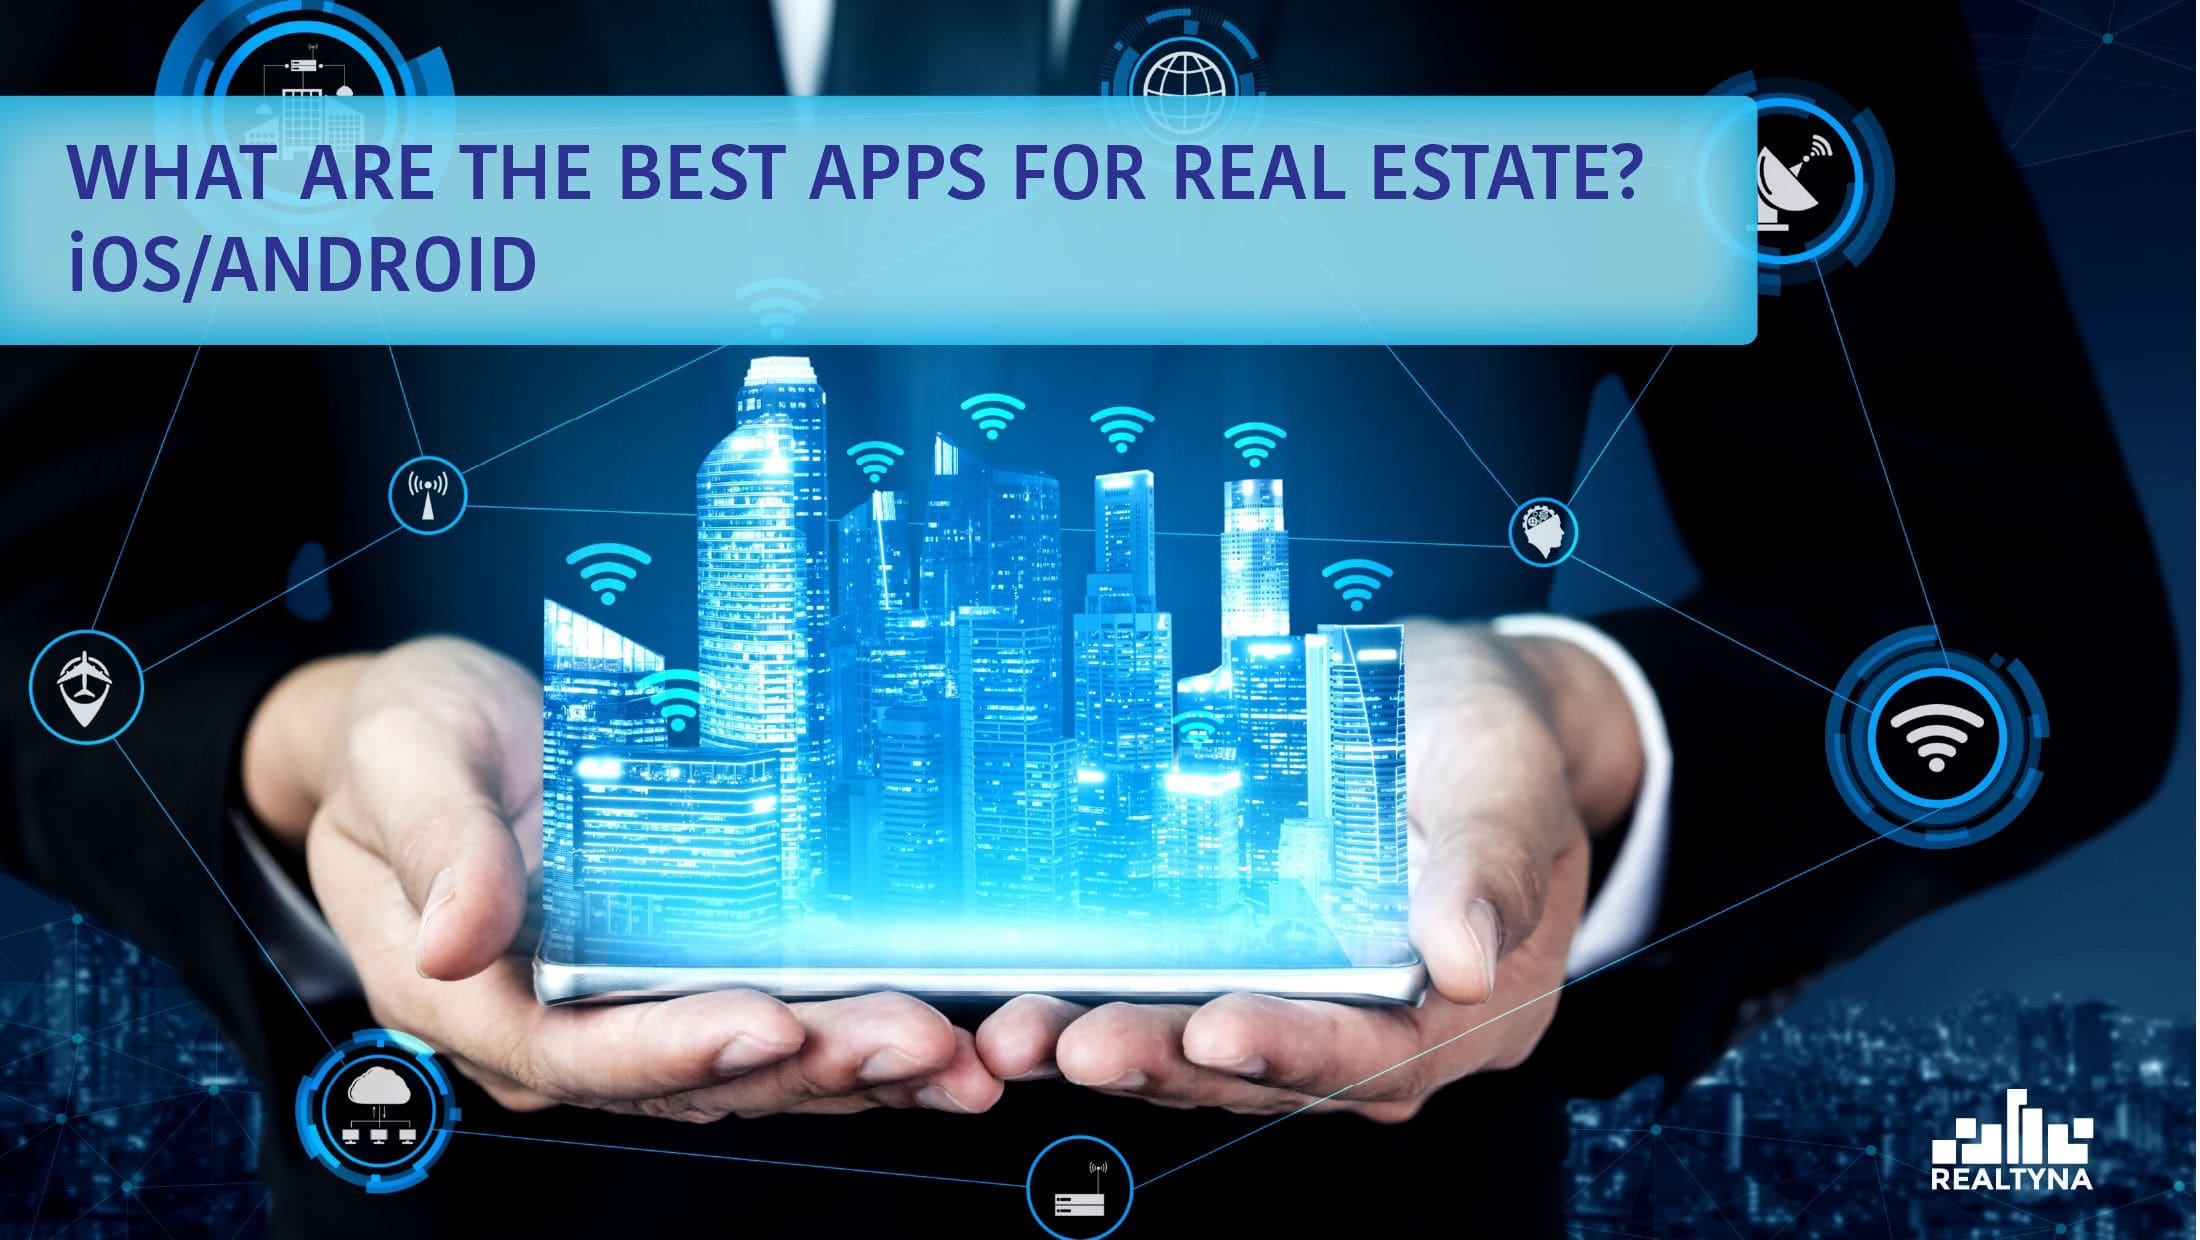 What Are the Best Apps for Real Estate? iOS/Android